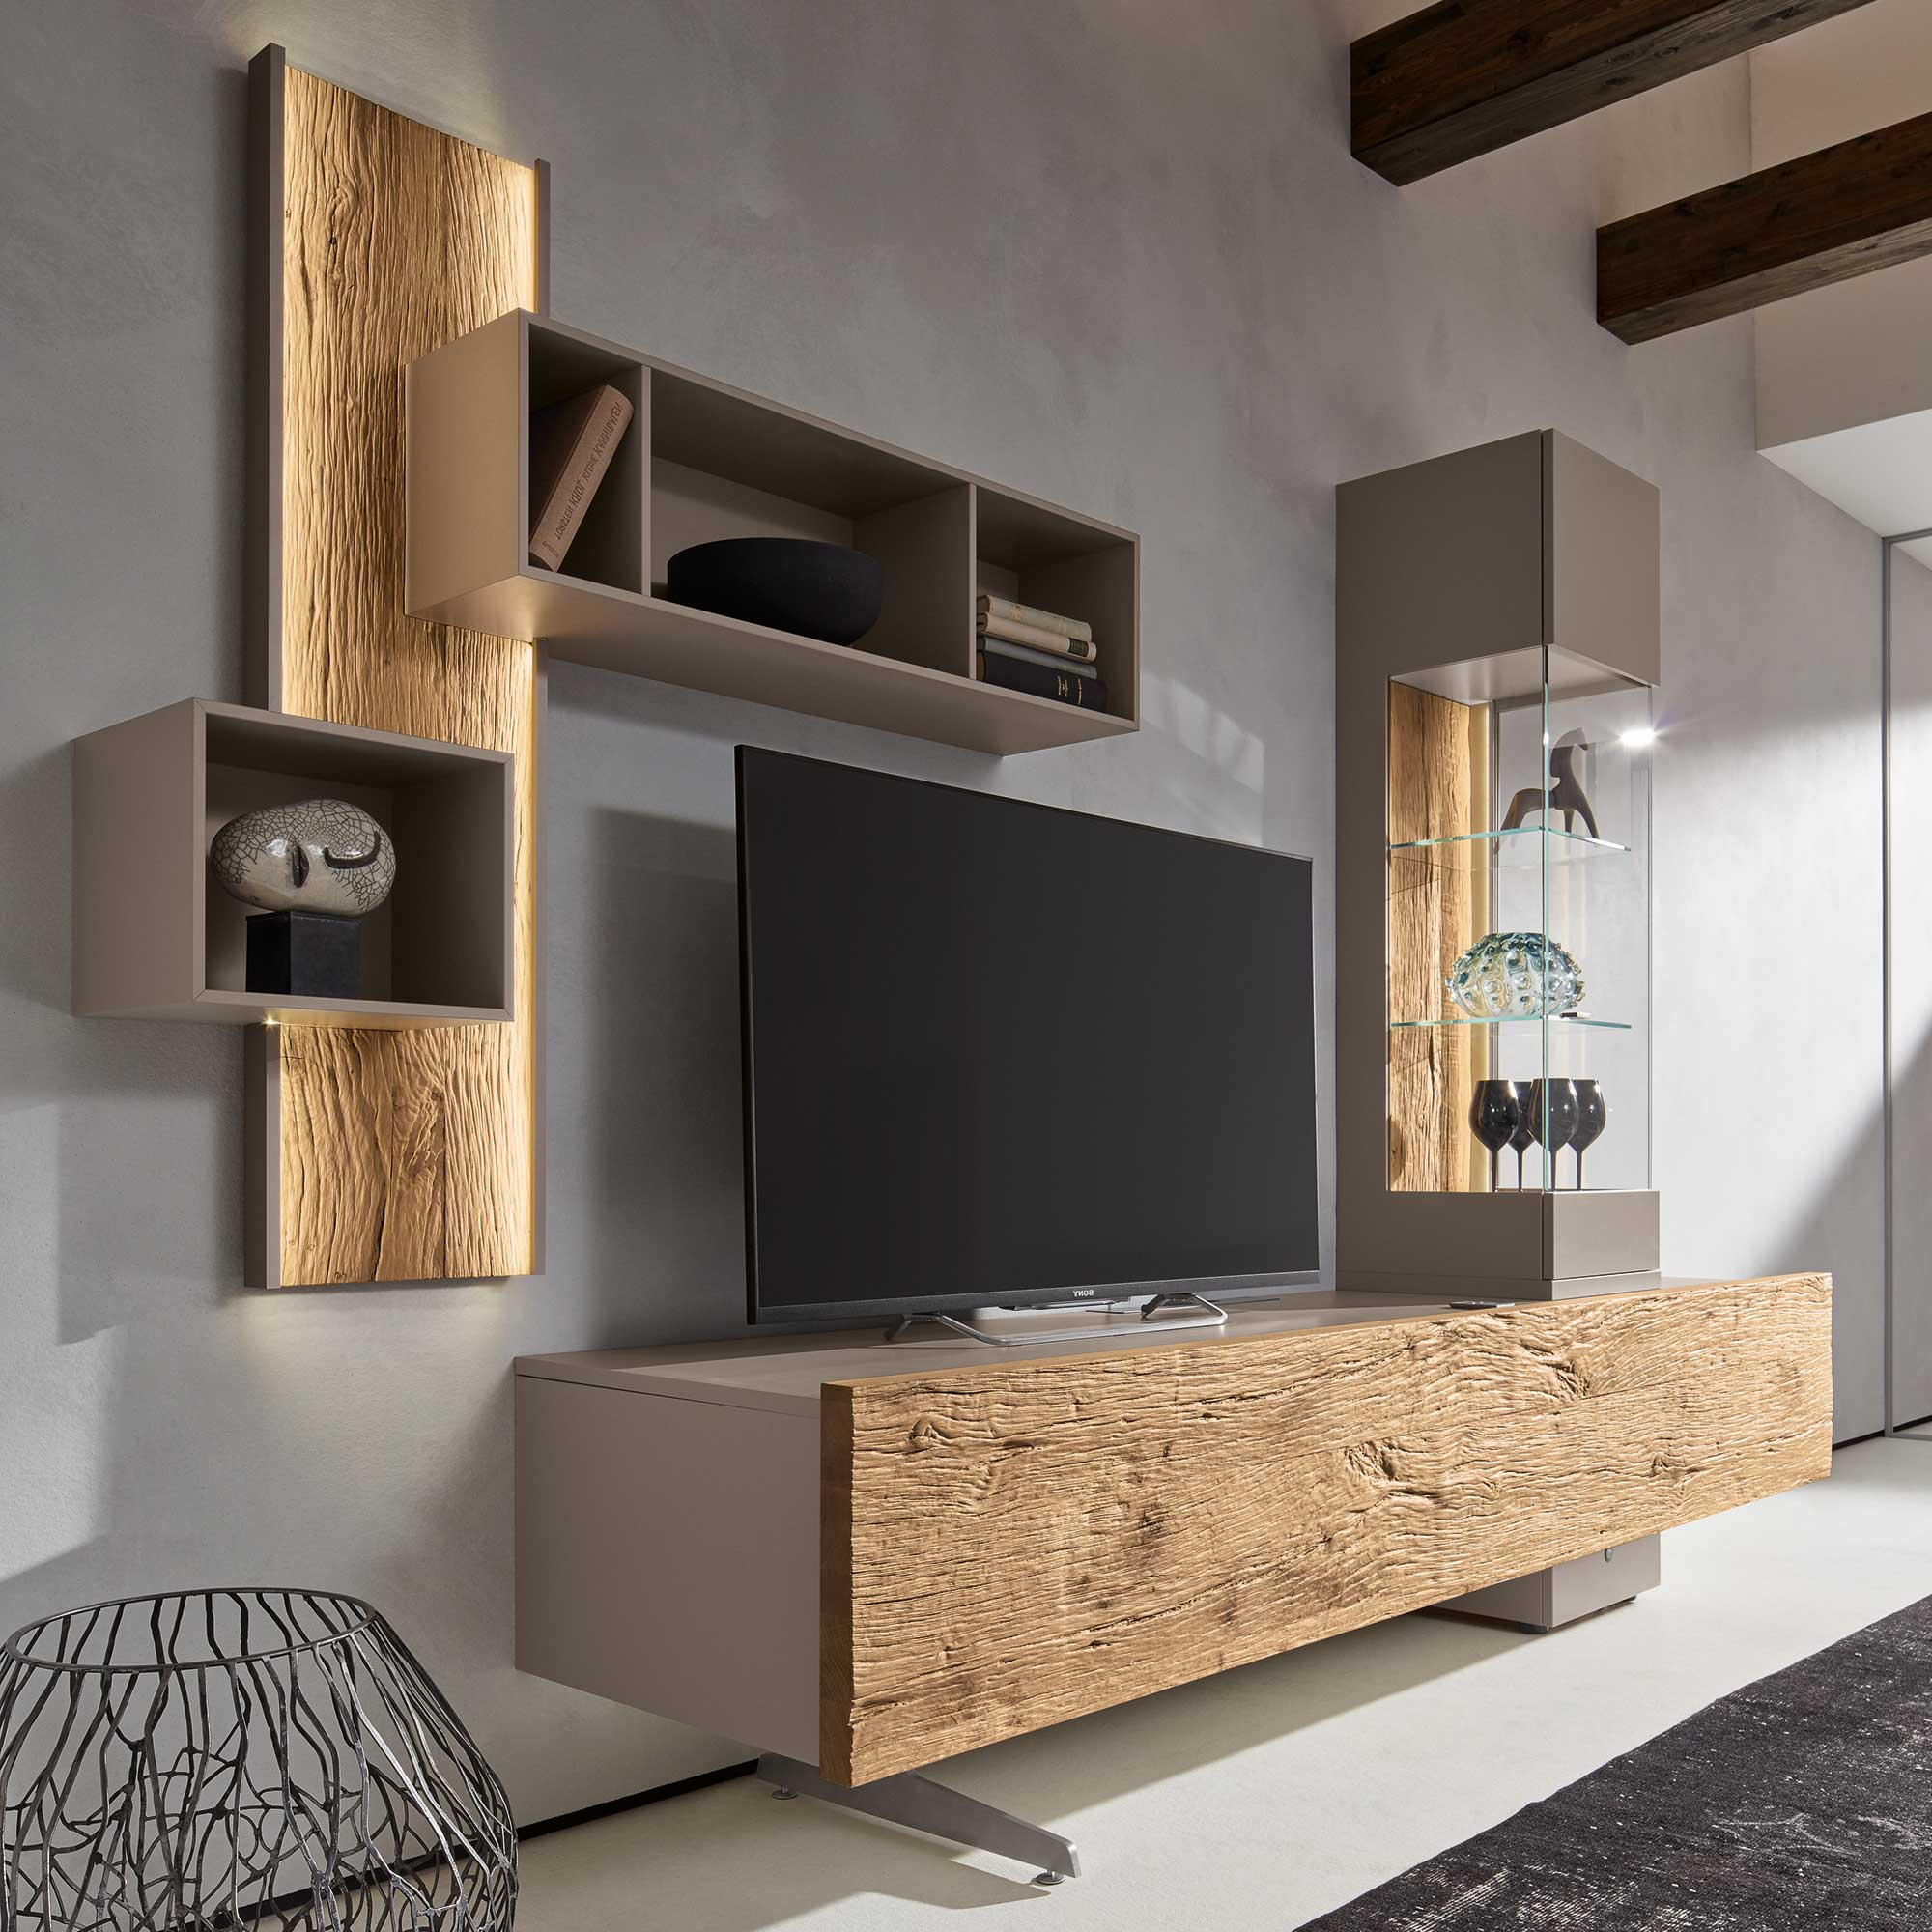 Bohle Combination Tv Wall Unit, Natural Oak & Glass (View 7 of 20)